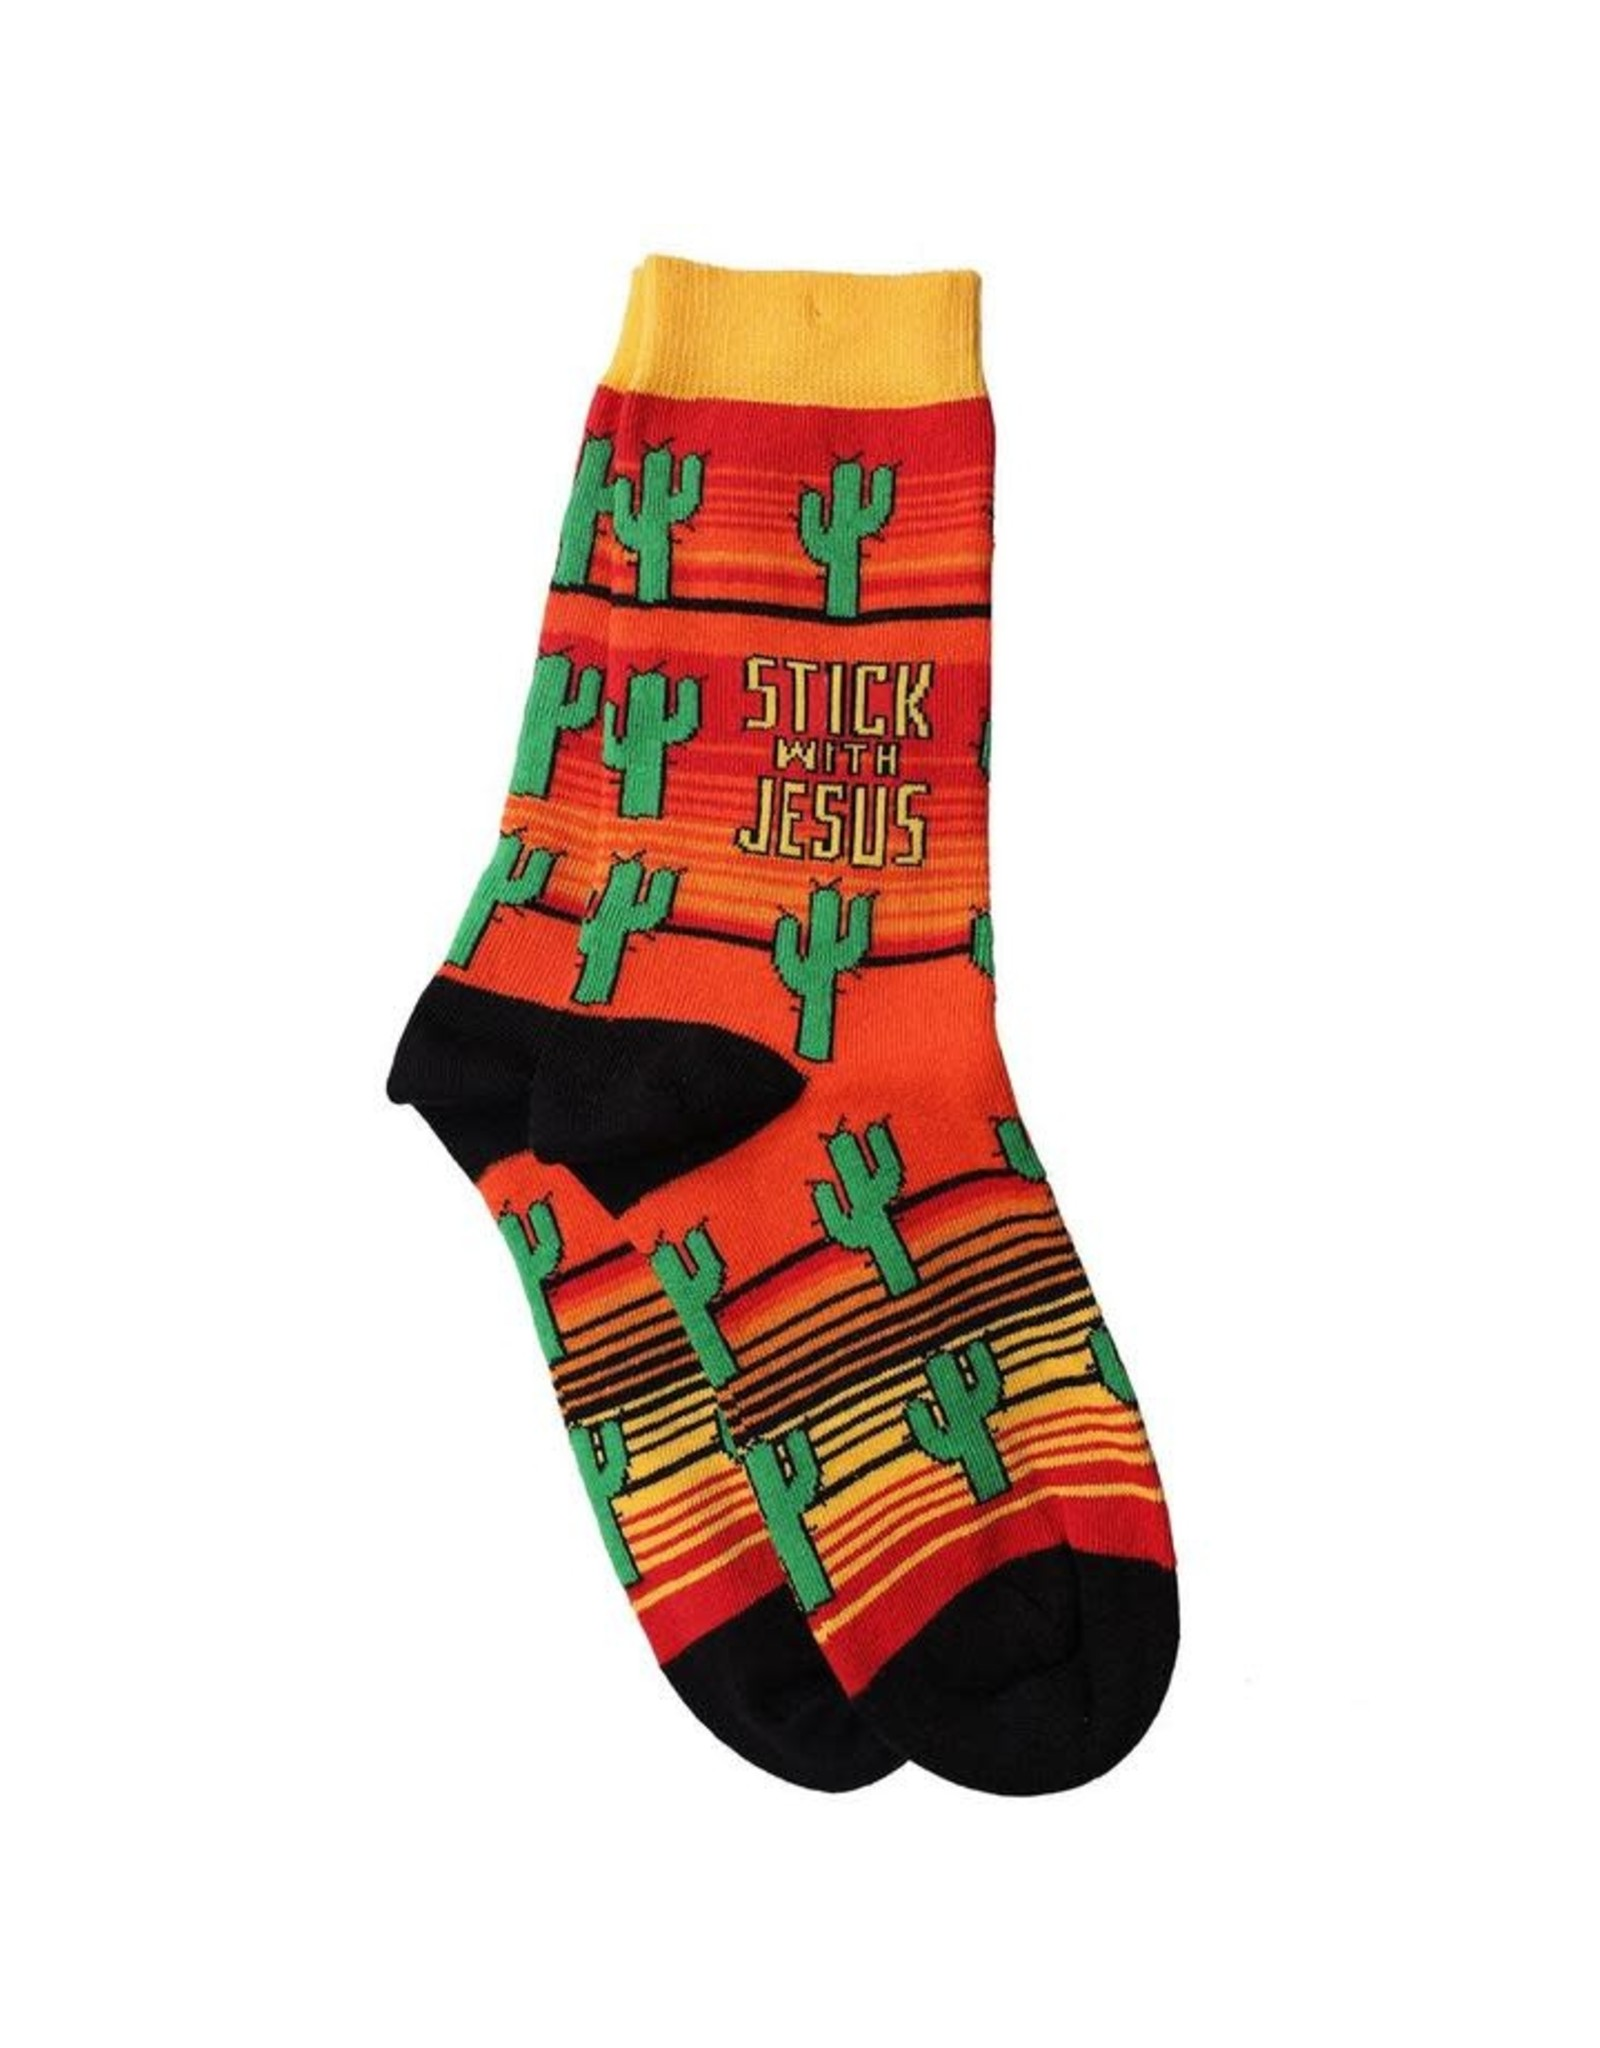 Bless My Sole Socks - Cactus (Stick with Jesus)